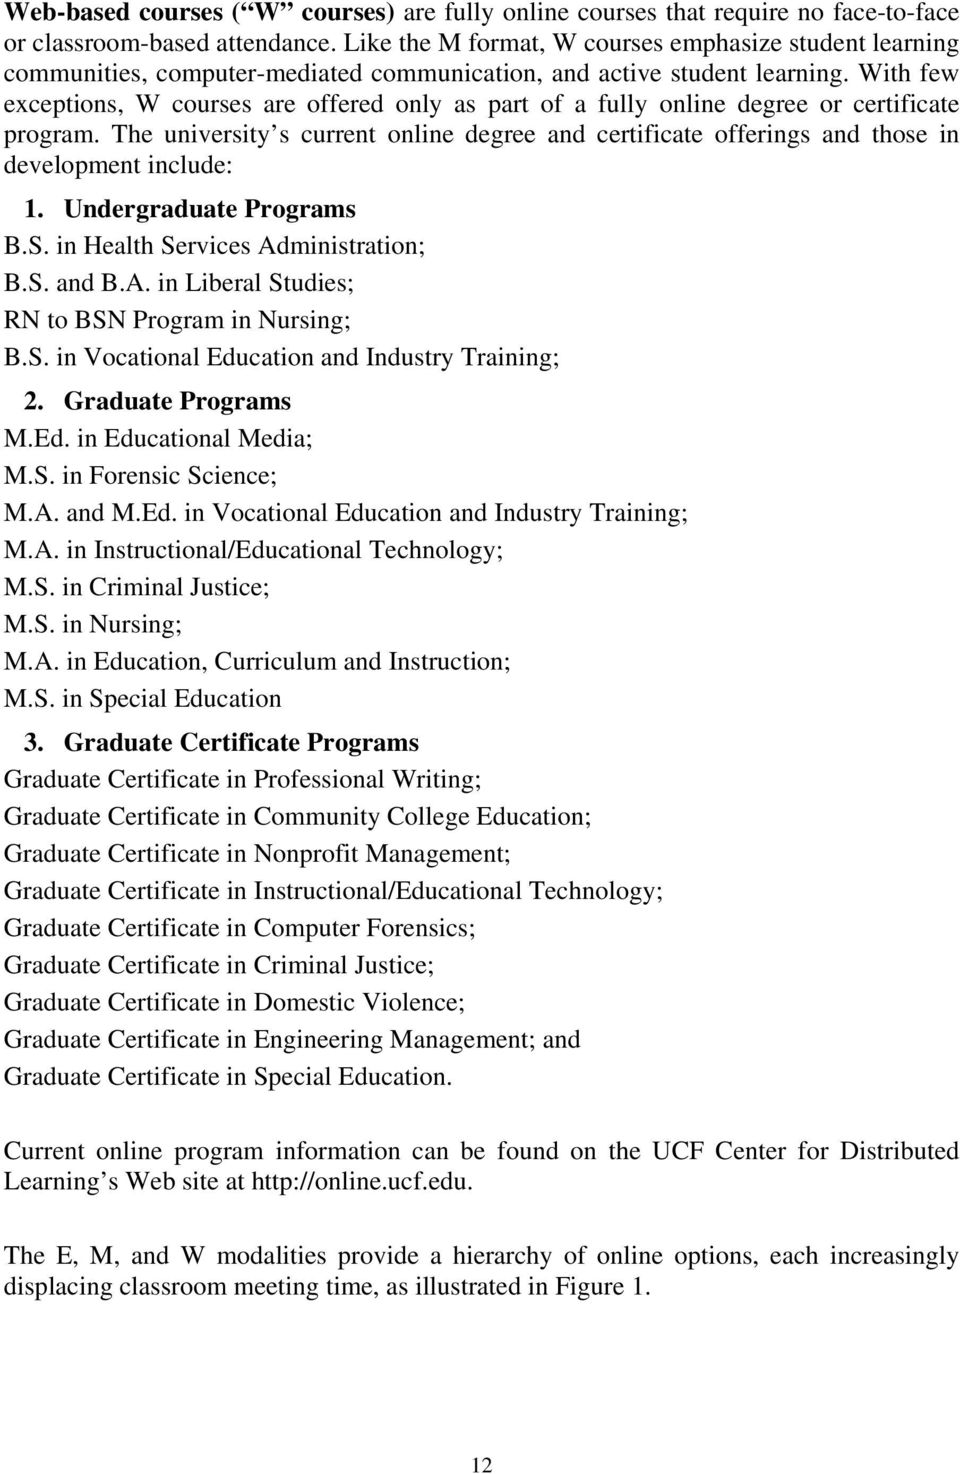 With few exceptions, W courses are offered only as part of a fully online degree or certificate program.